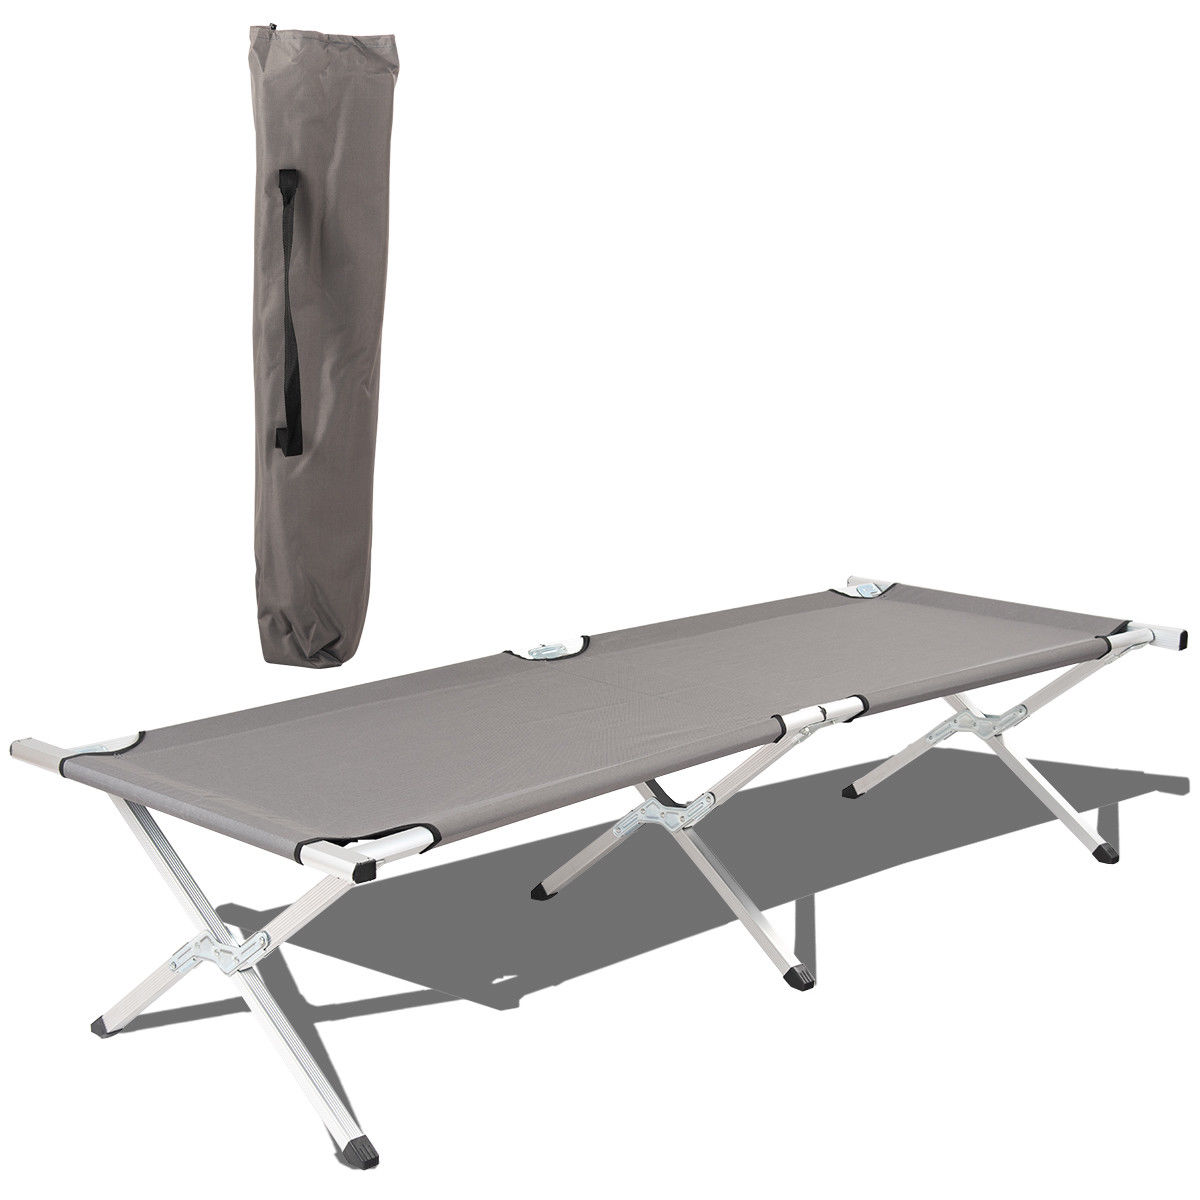 Costway Gray Foldable Camping Bed Portable Military Cot Hiking Travel w/ carrying Bag